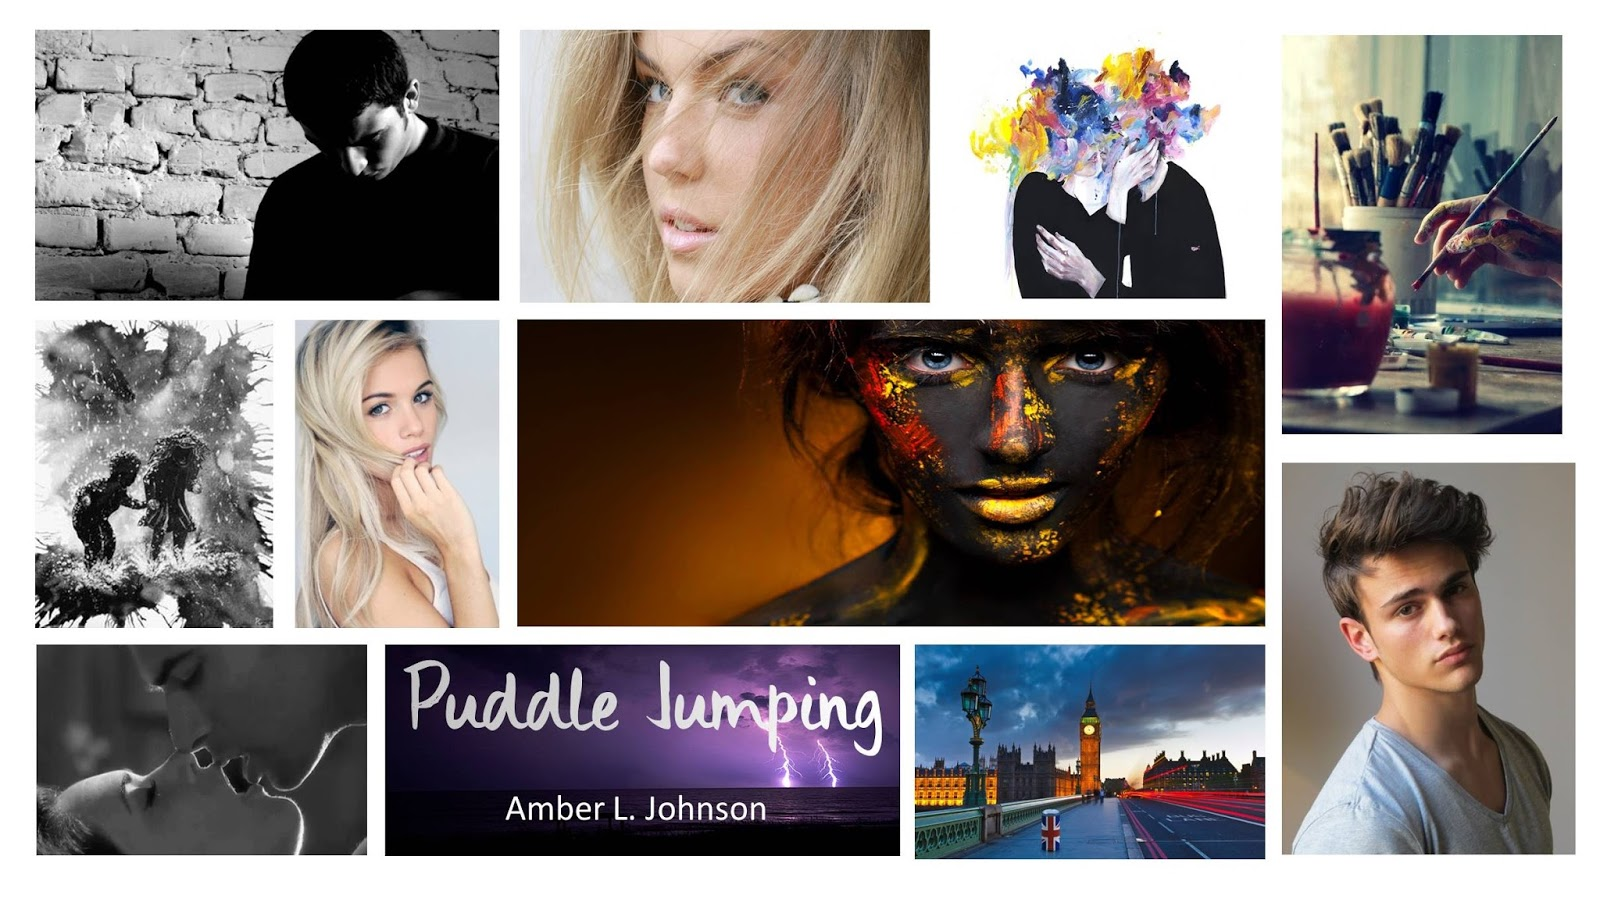 Review - Amber L. Johnson: Puddle Jumping